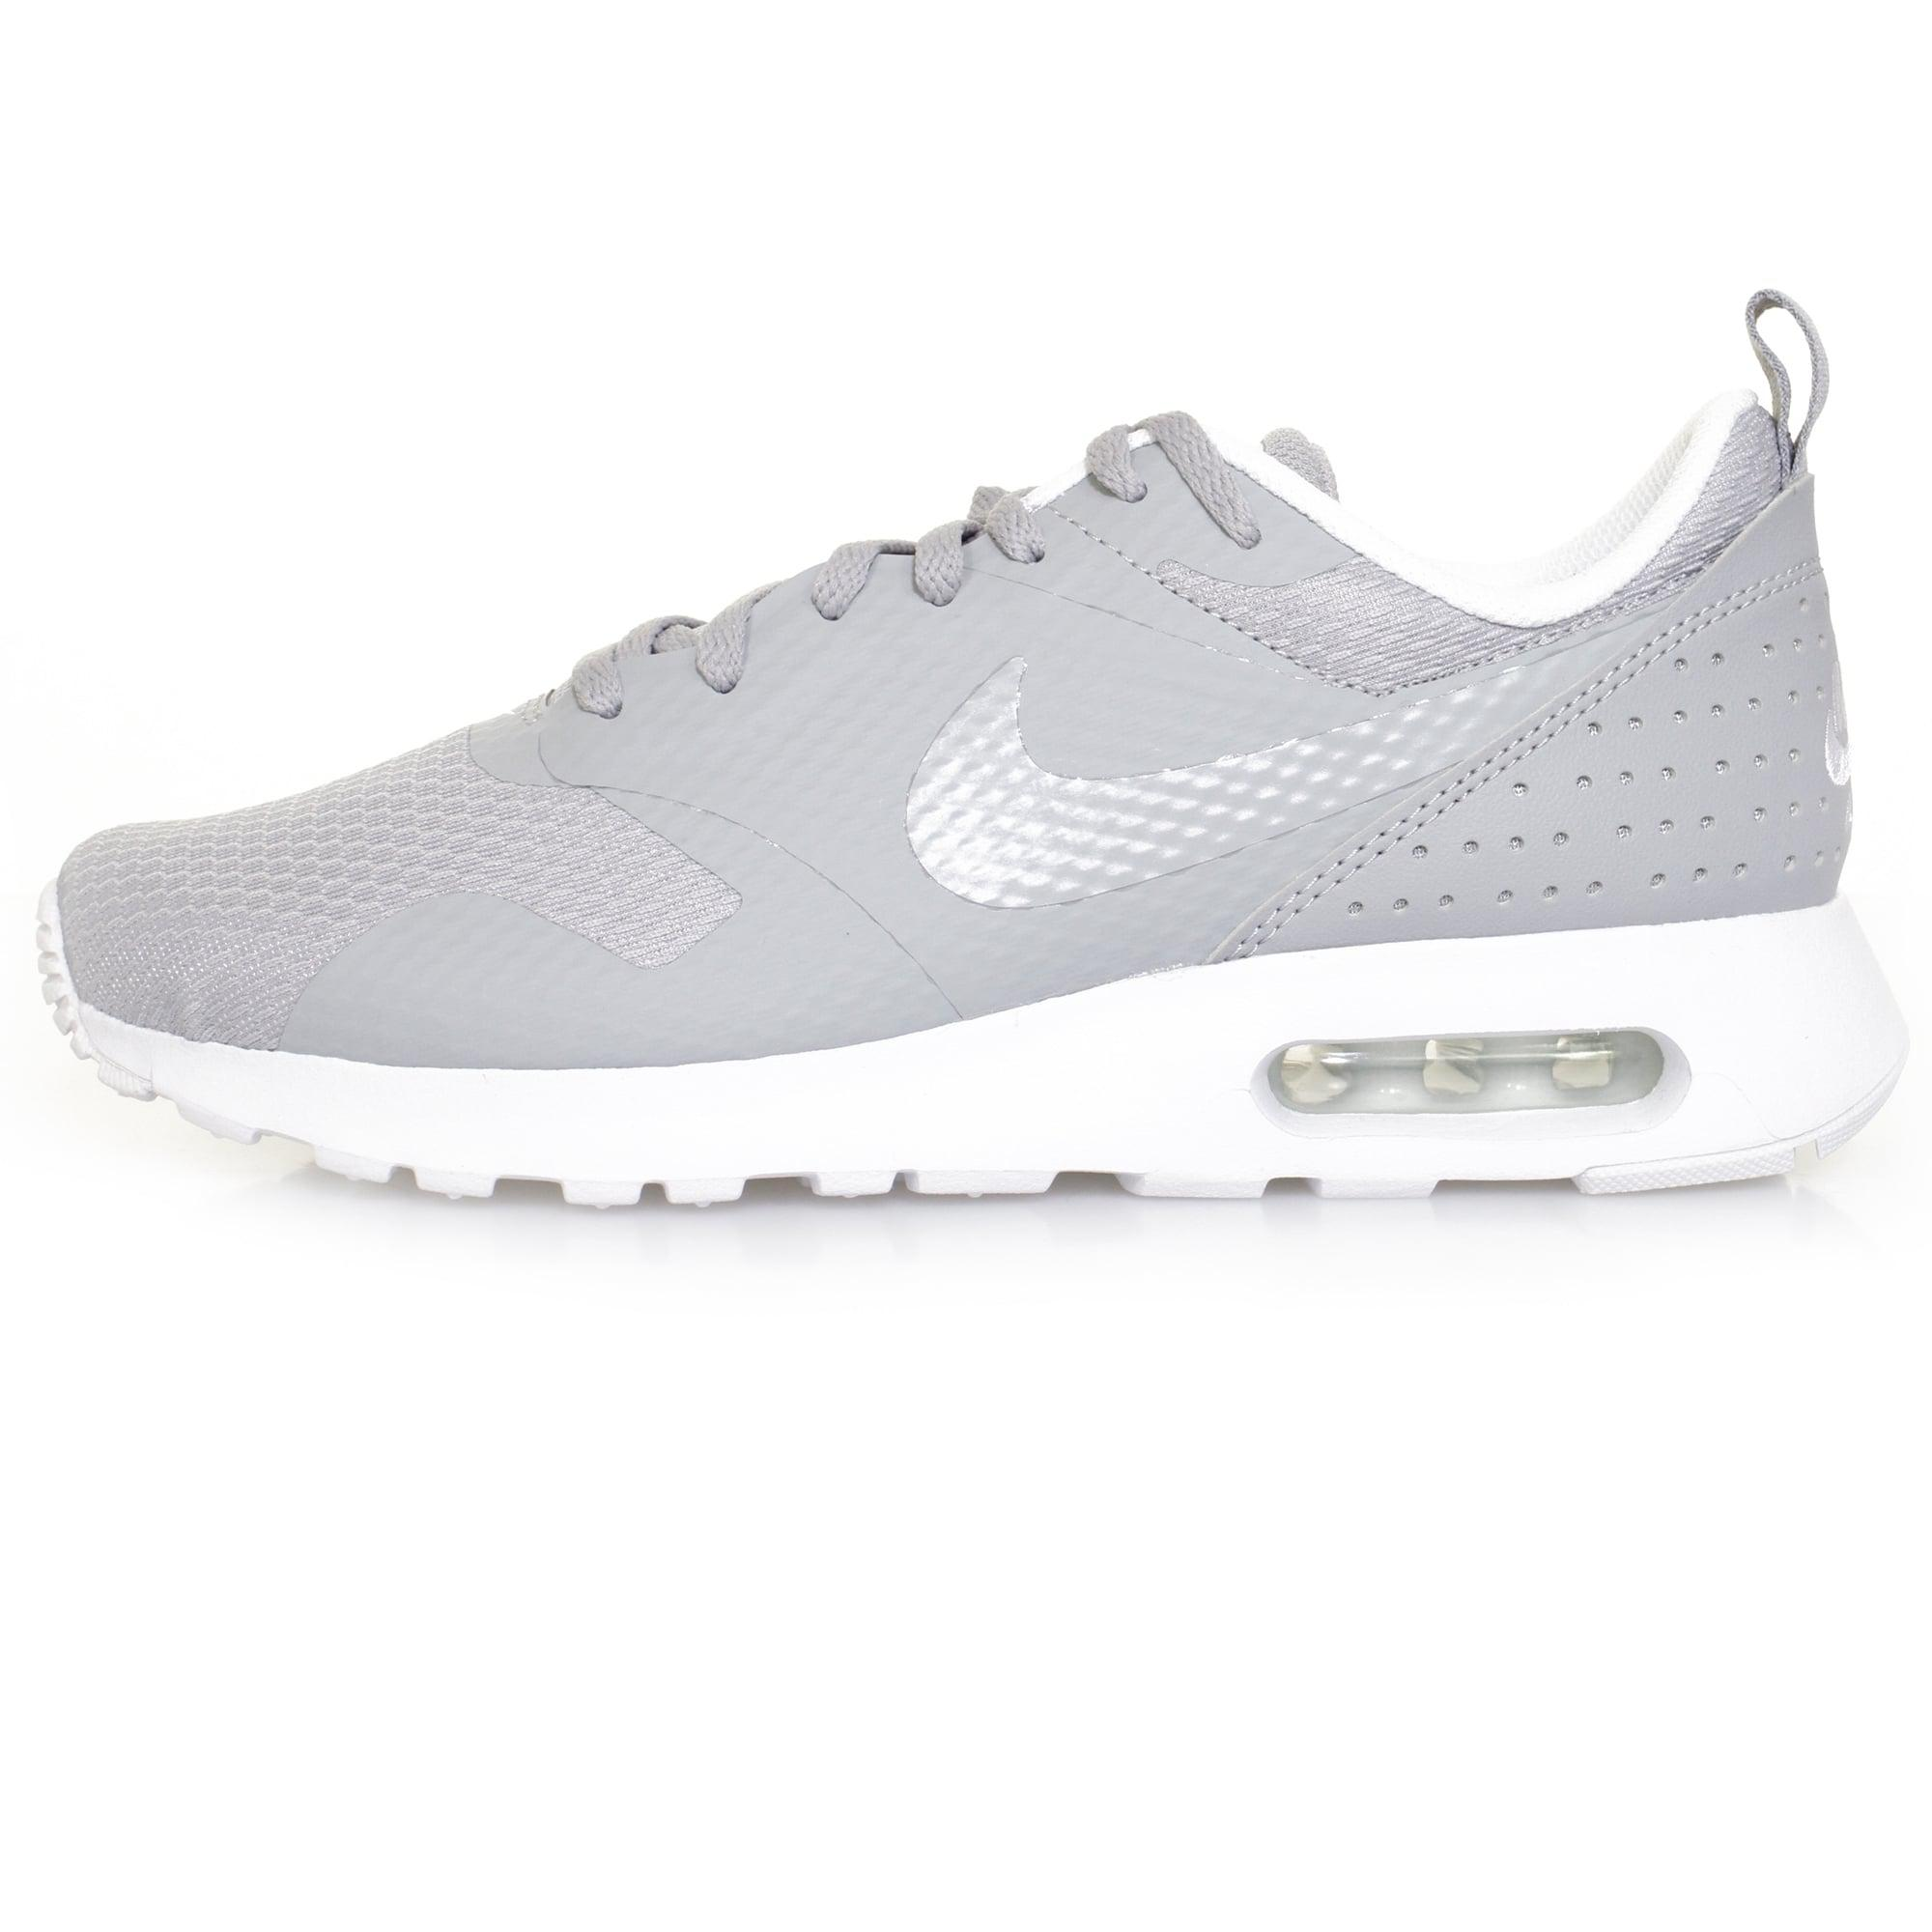 pretty nice 844c1 c9aed Nike Air Max Tavas Wolf Grey Shoe in Gray for Men - Lyst